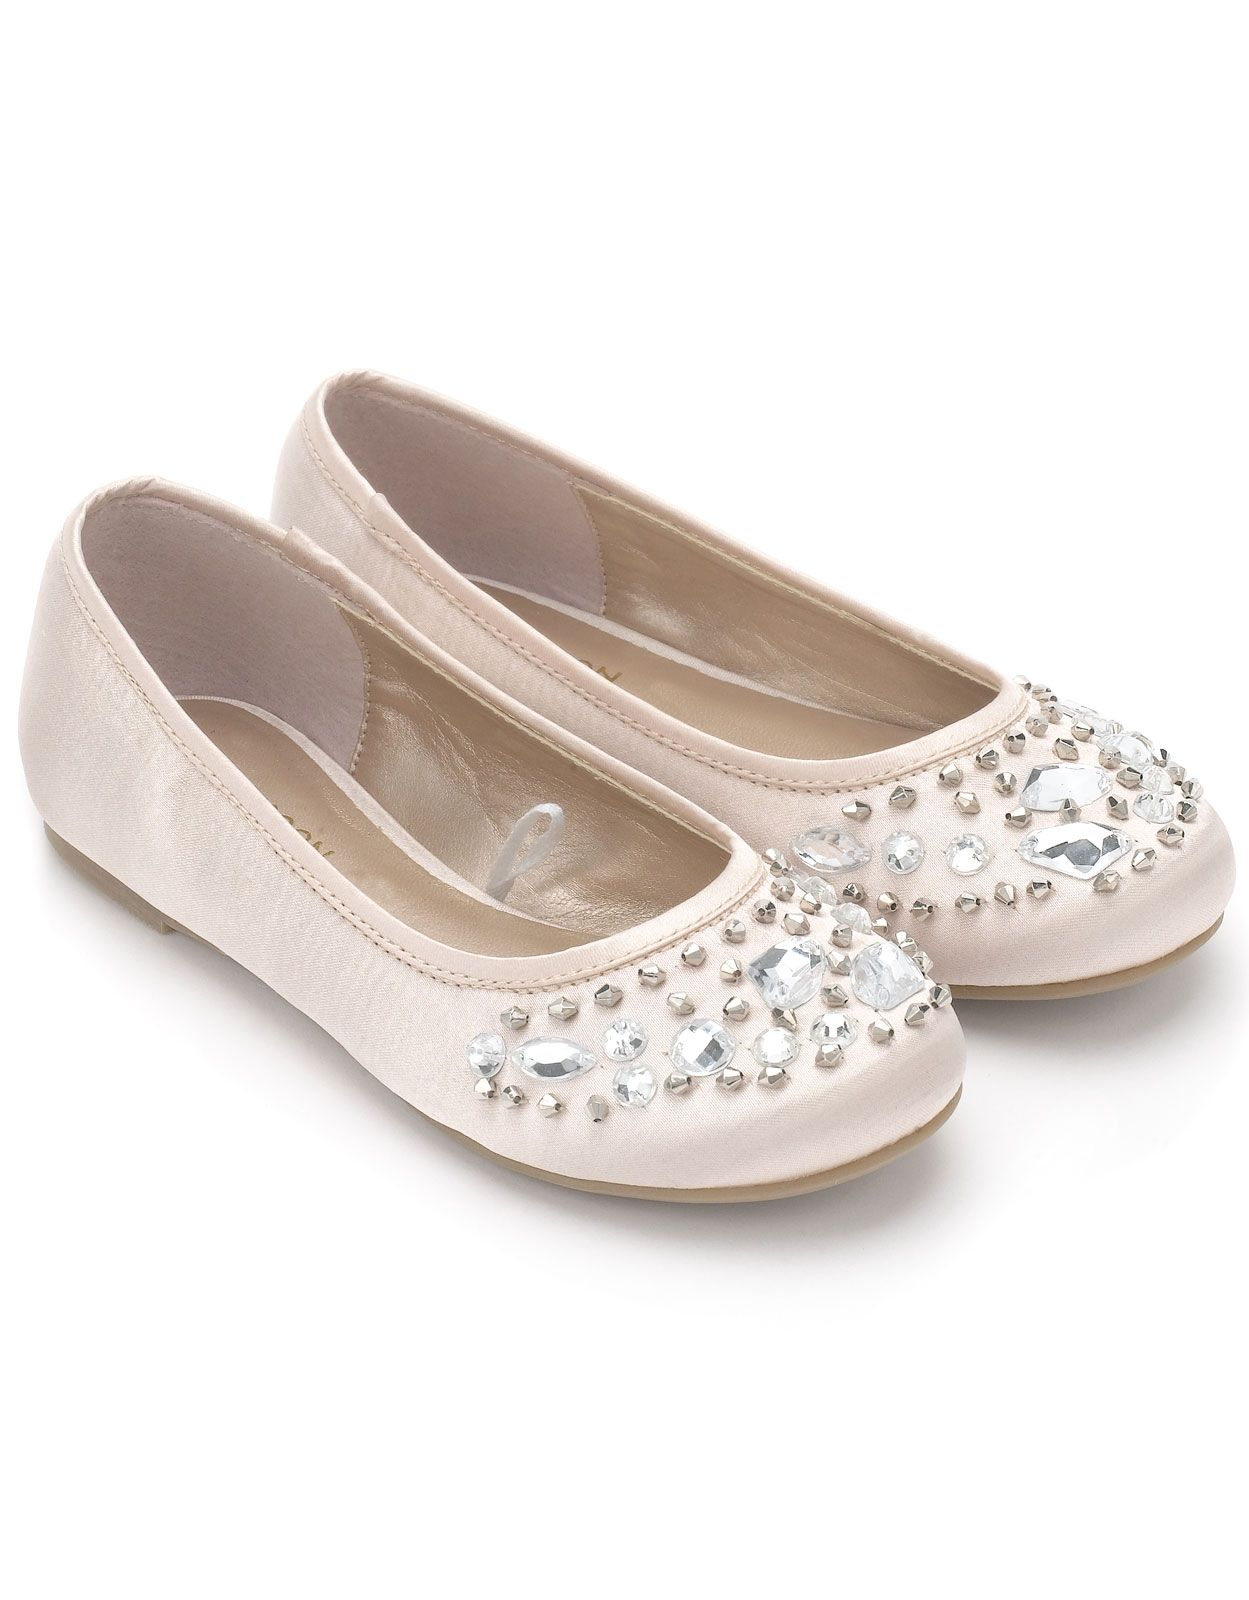 Beth Bridesmaid Shoes Bridesmaid Shoes Childrens